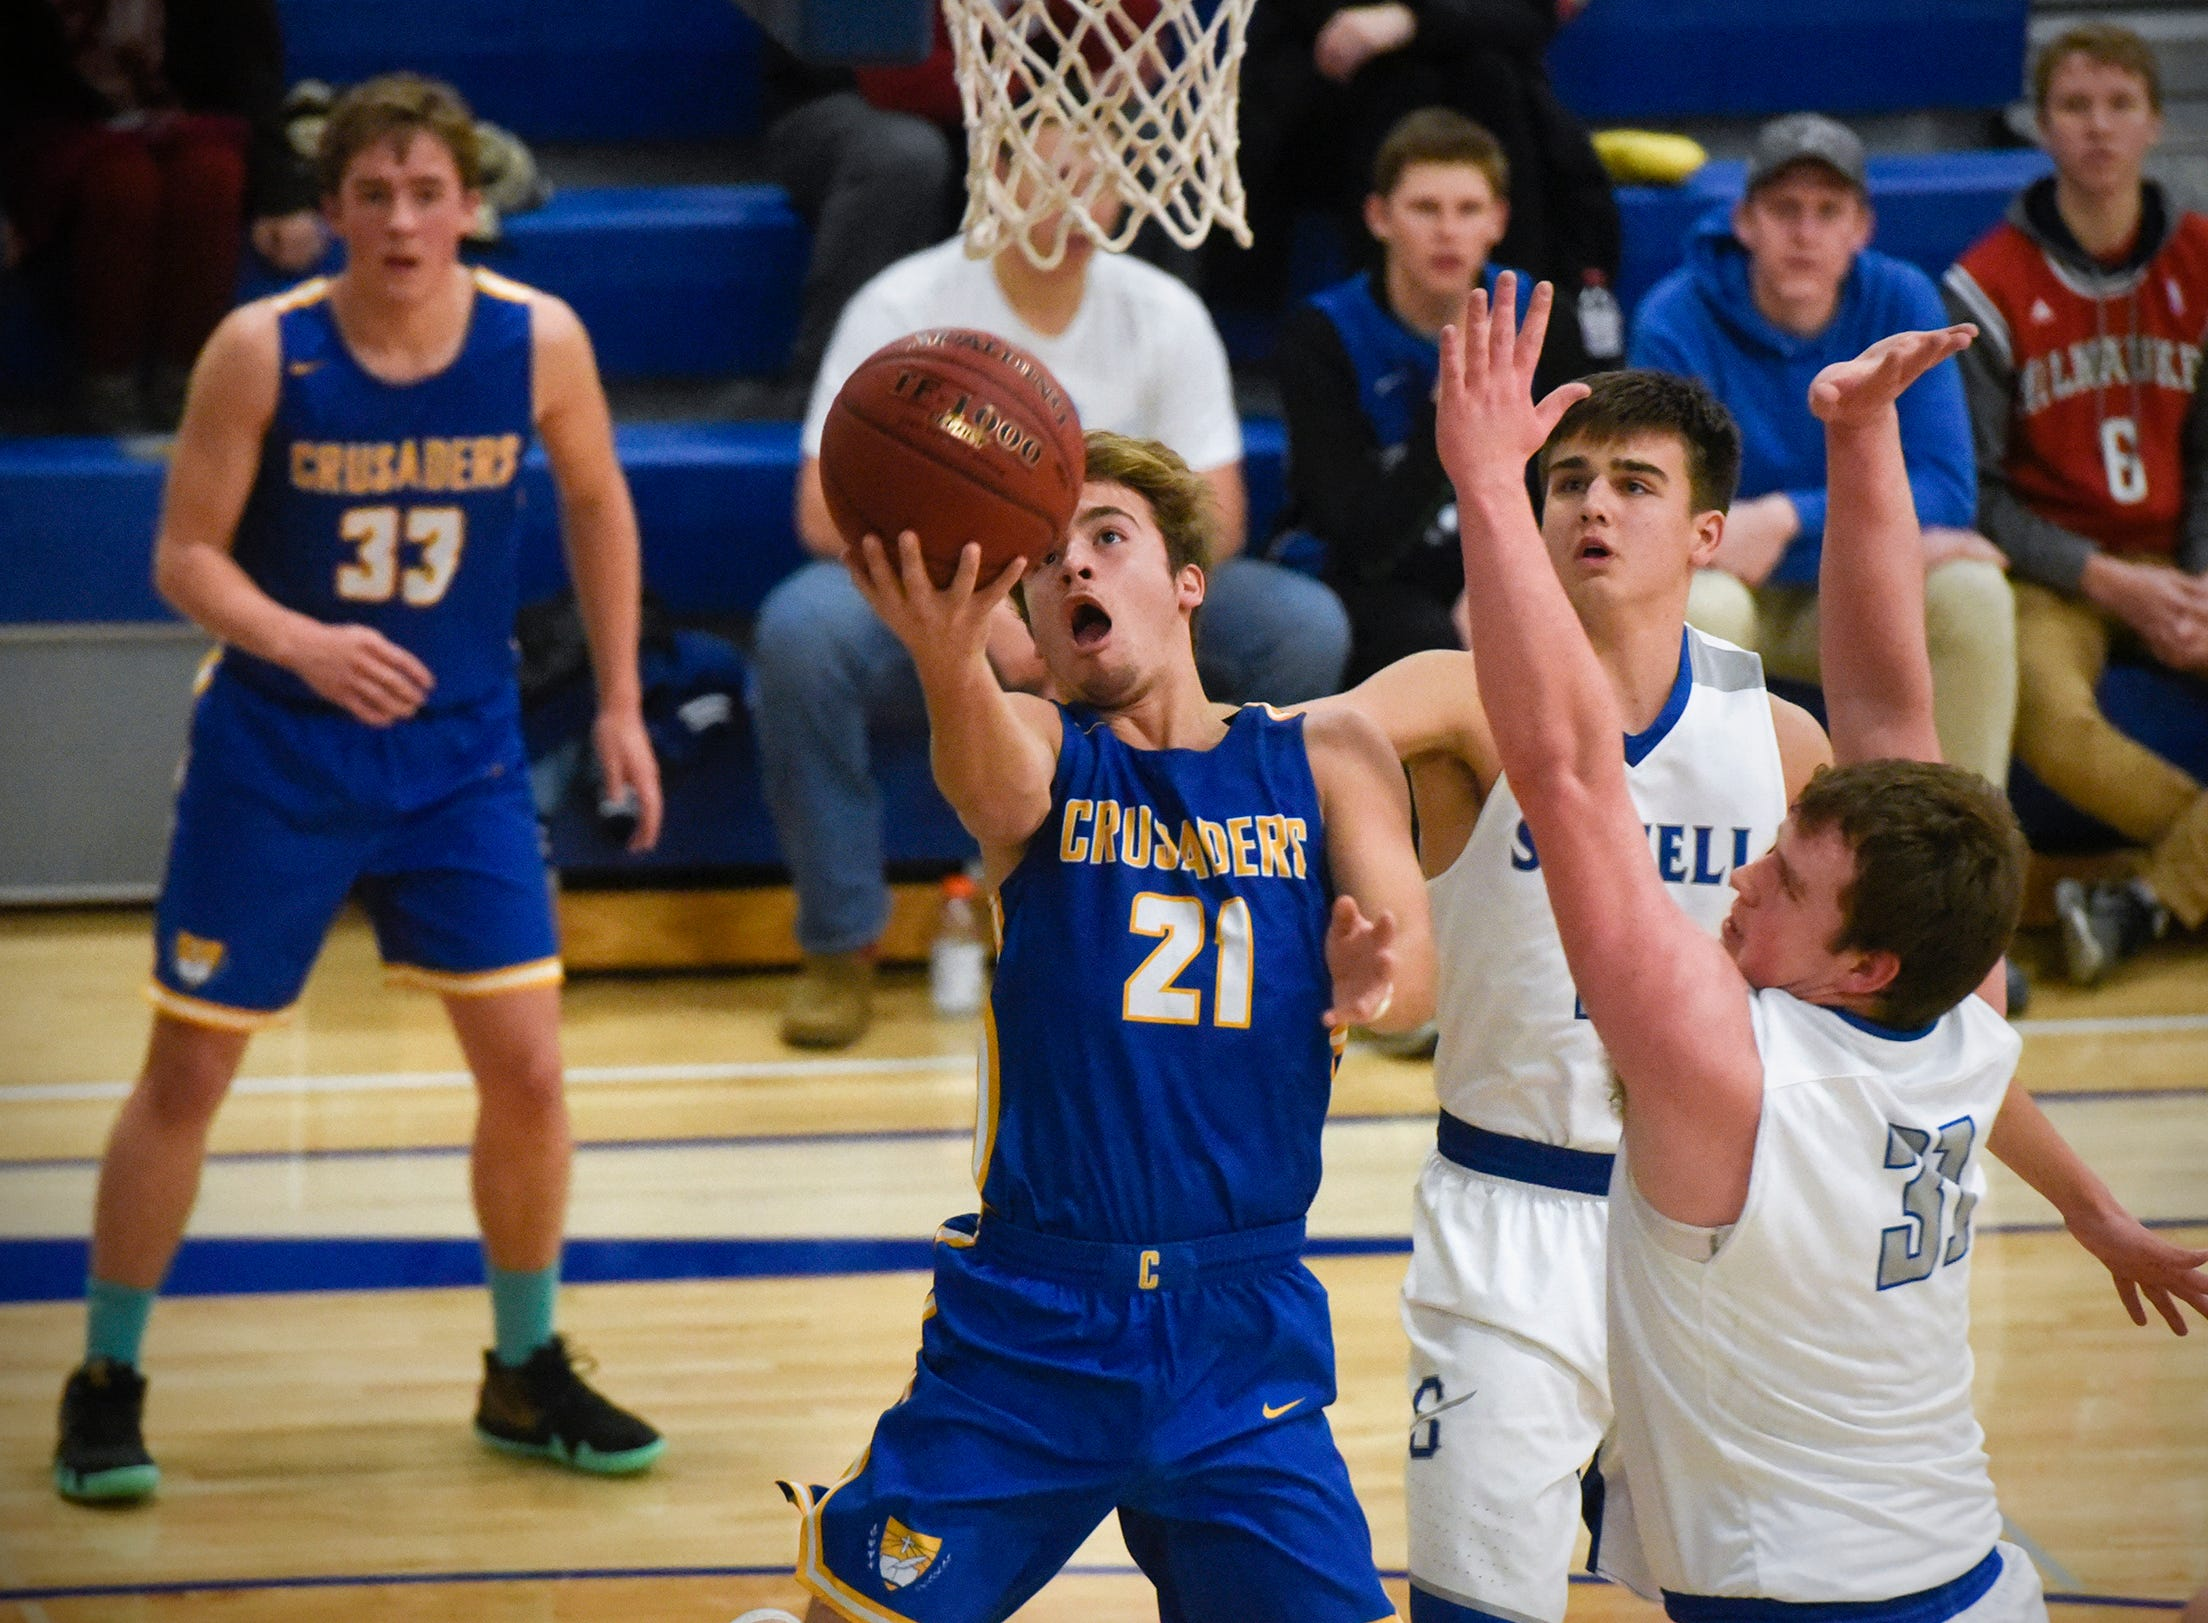 Sam Schneider puts up a shot for Cathedral during the game Tuesday, Jan. 8, against Sartell at Cathedral High School in St. Cloud.